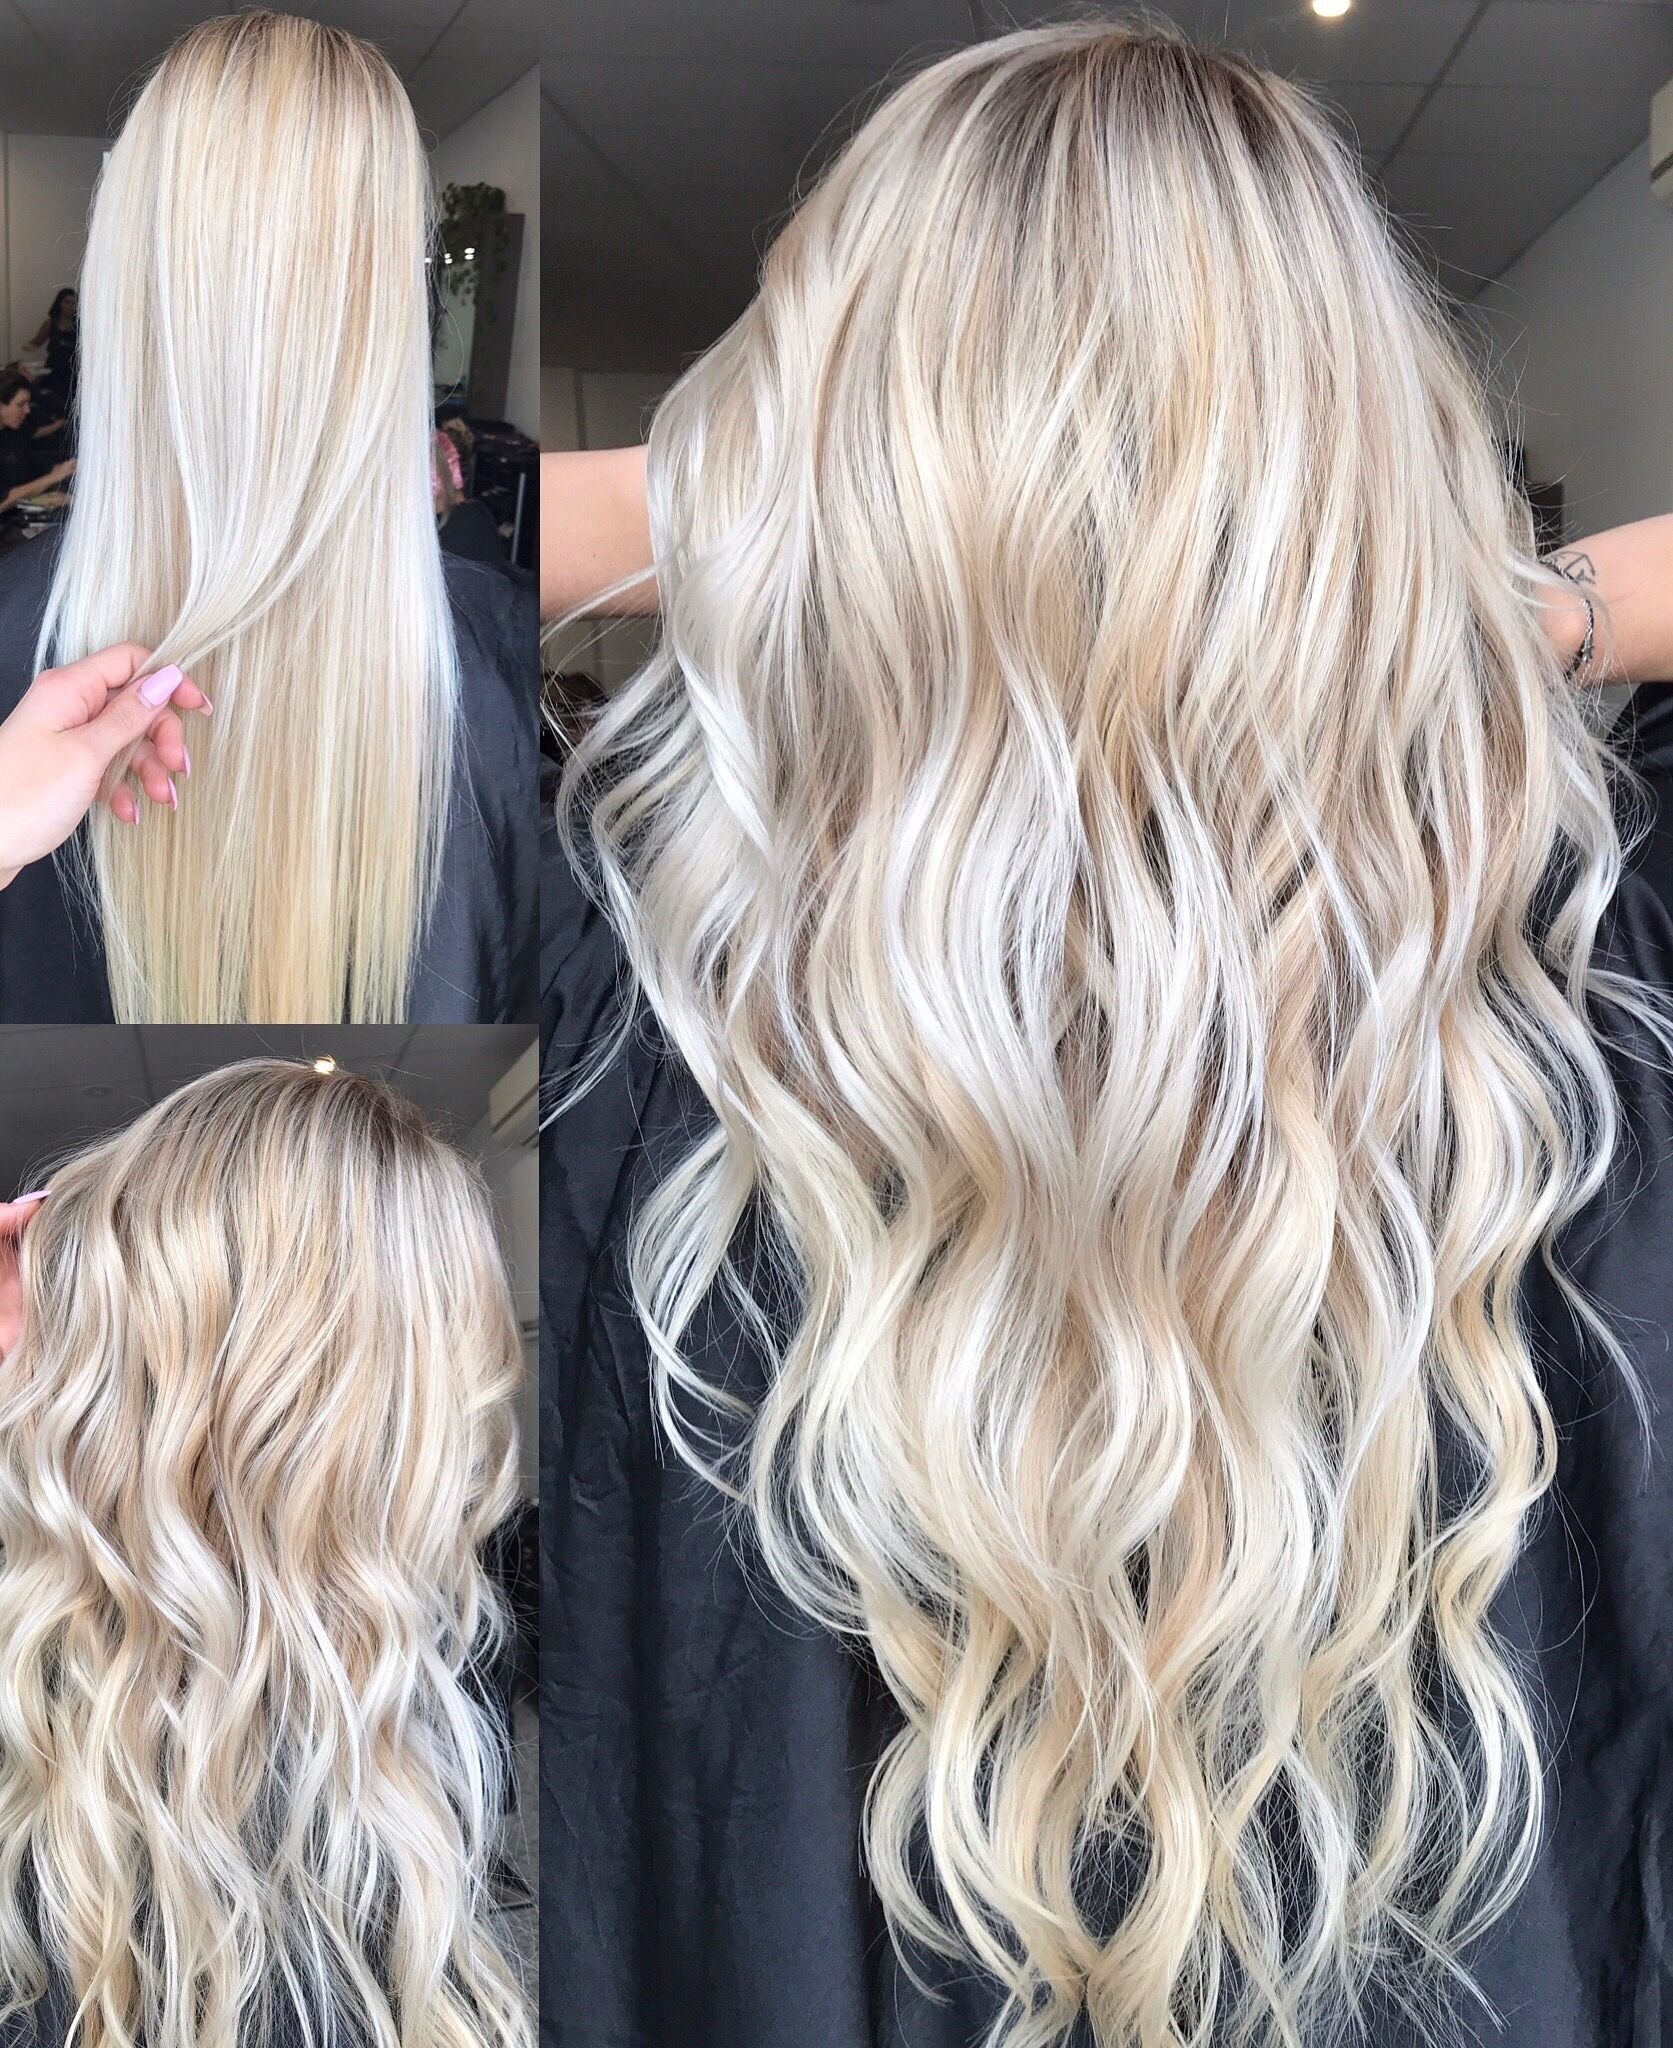 Platinum Blonde Balayage Hair Color Idea: Blonde Balayage, Long Hair, Cool Girl Hair ϸ� Lived In Hair